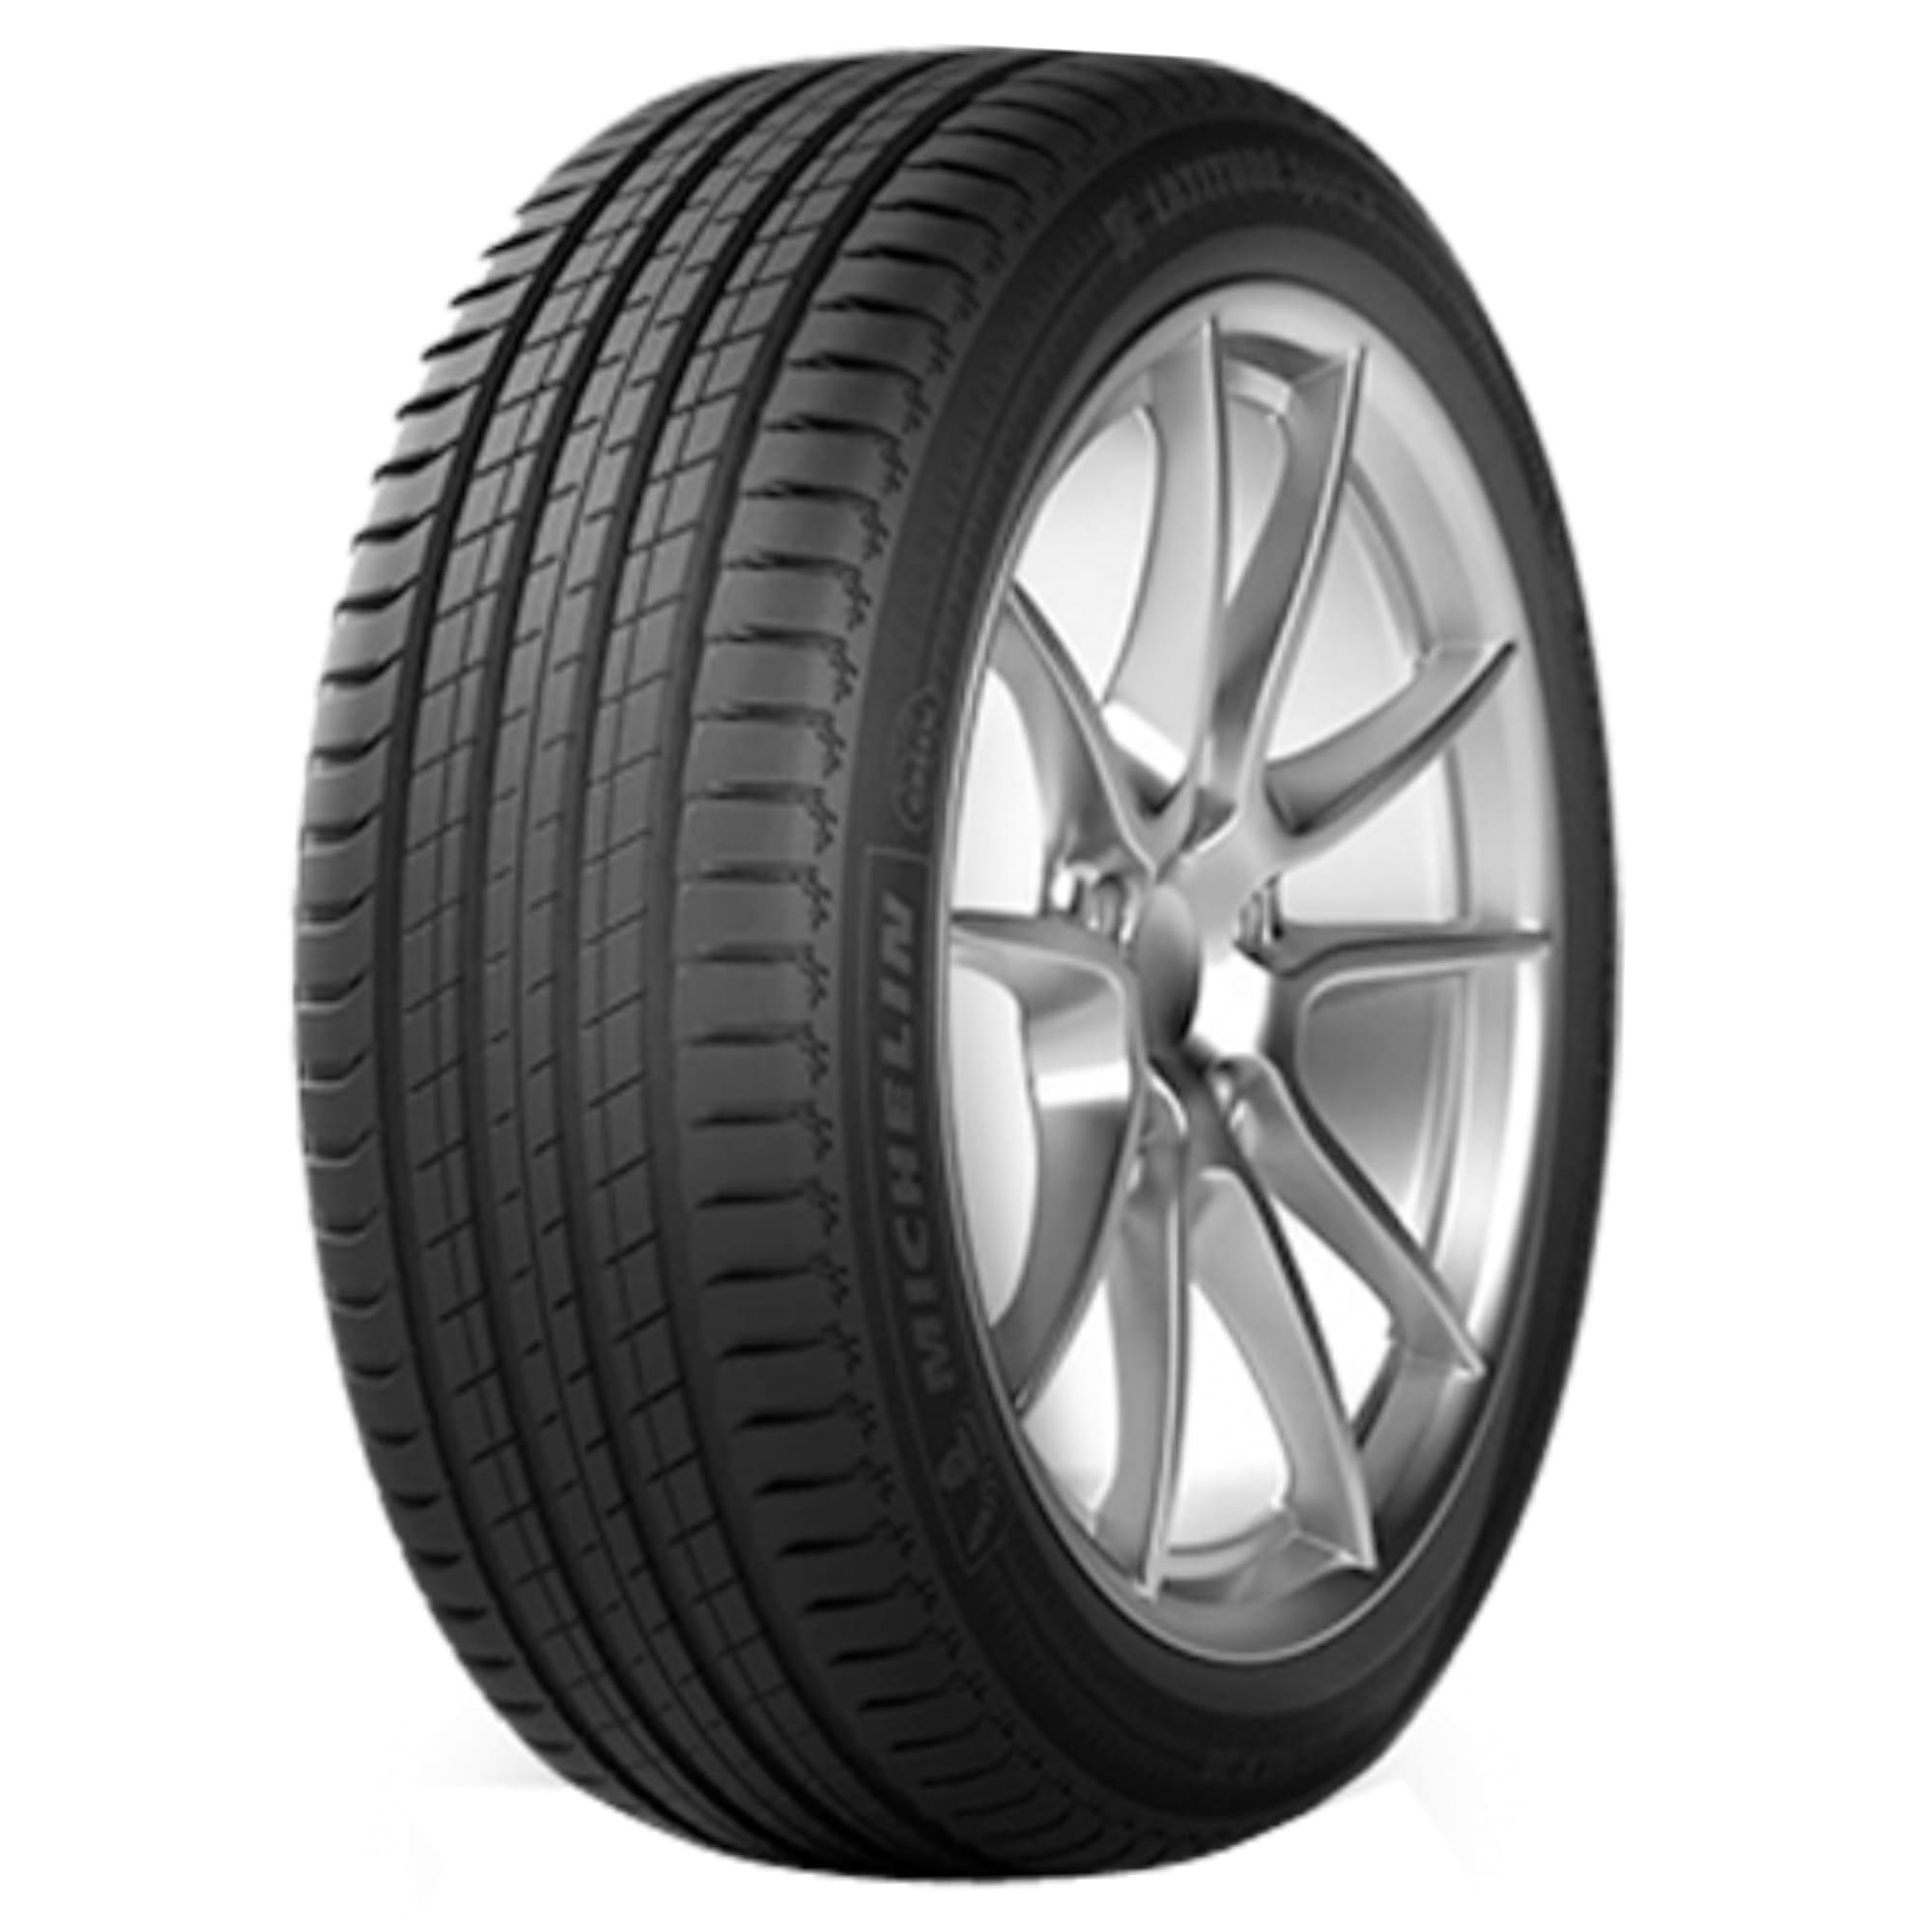 Neumaticos MICHELIN LATITUDE  SPORT 3 285/40 R20 108Y Mini Foto 1